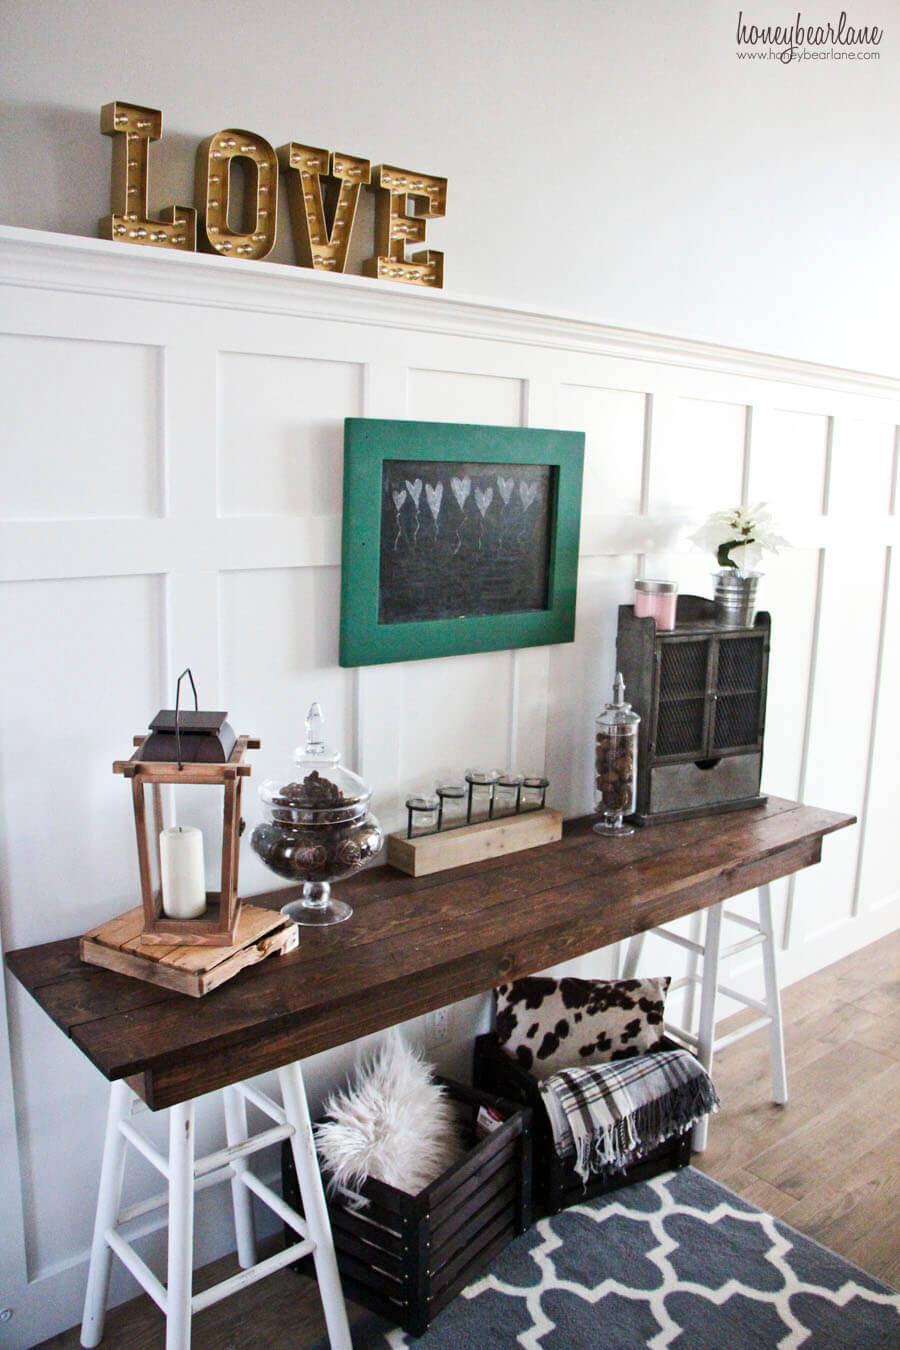 Create a Table with Reclaimed Wood